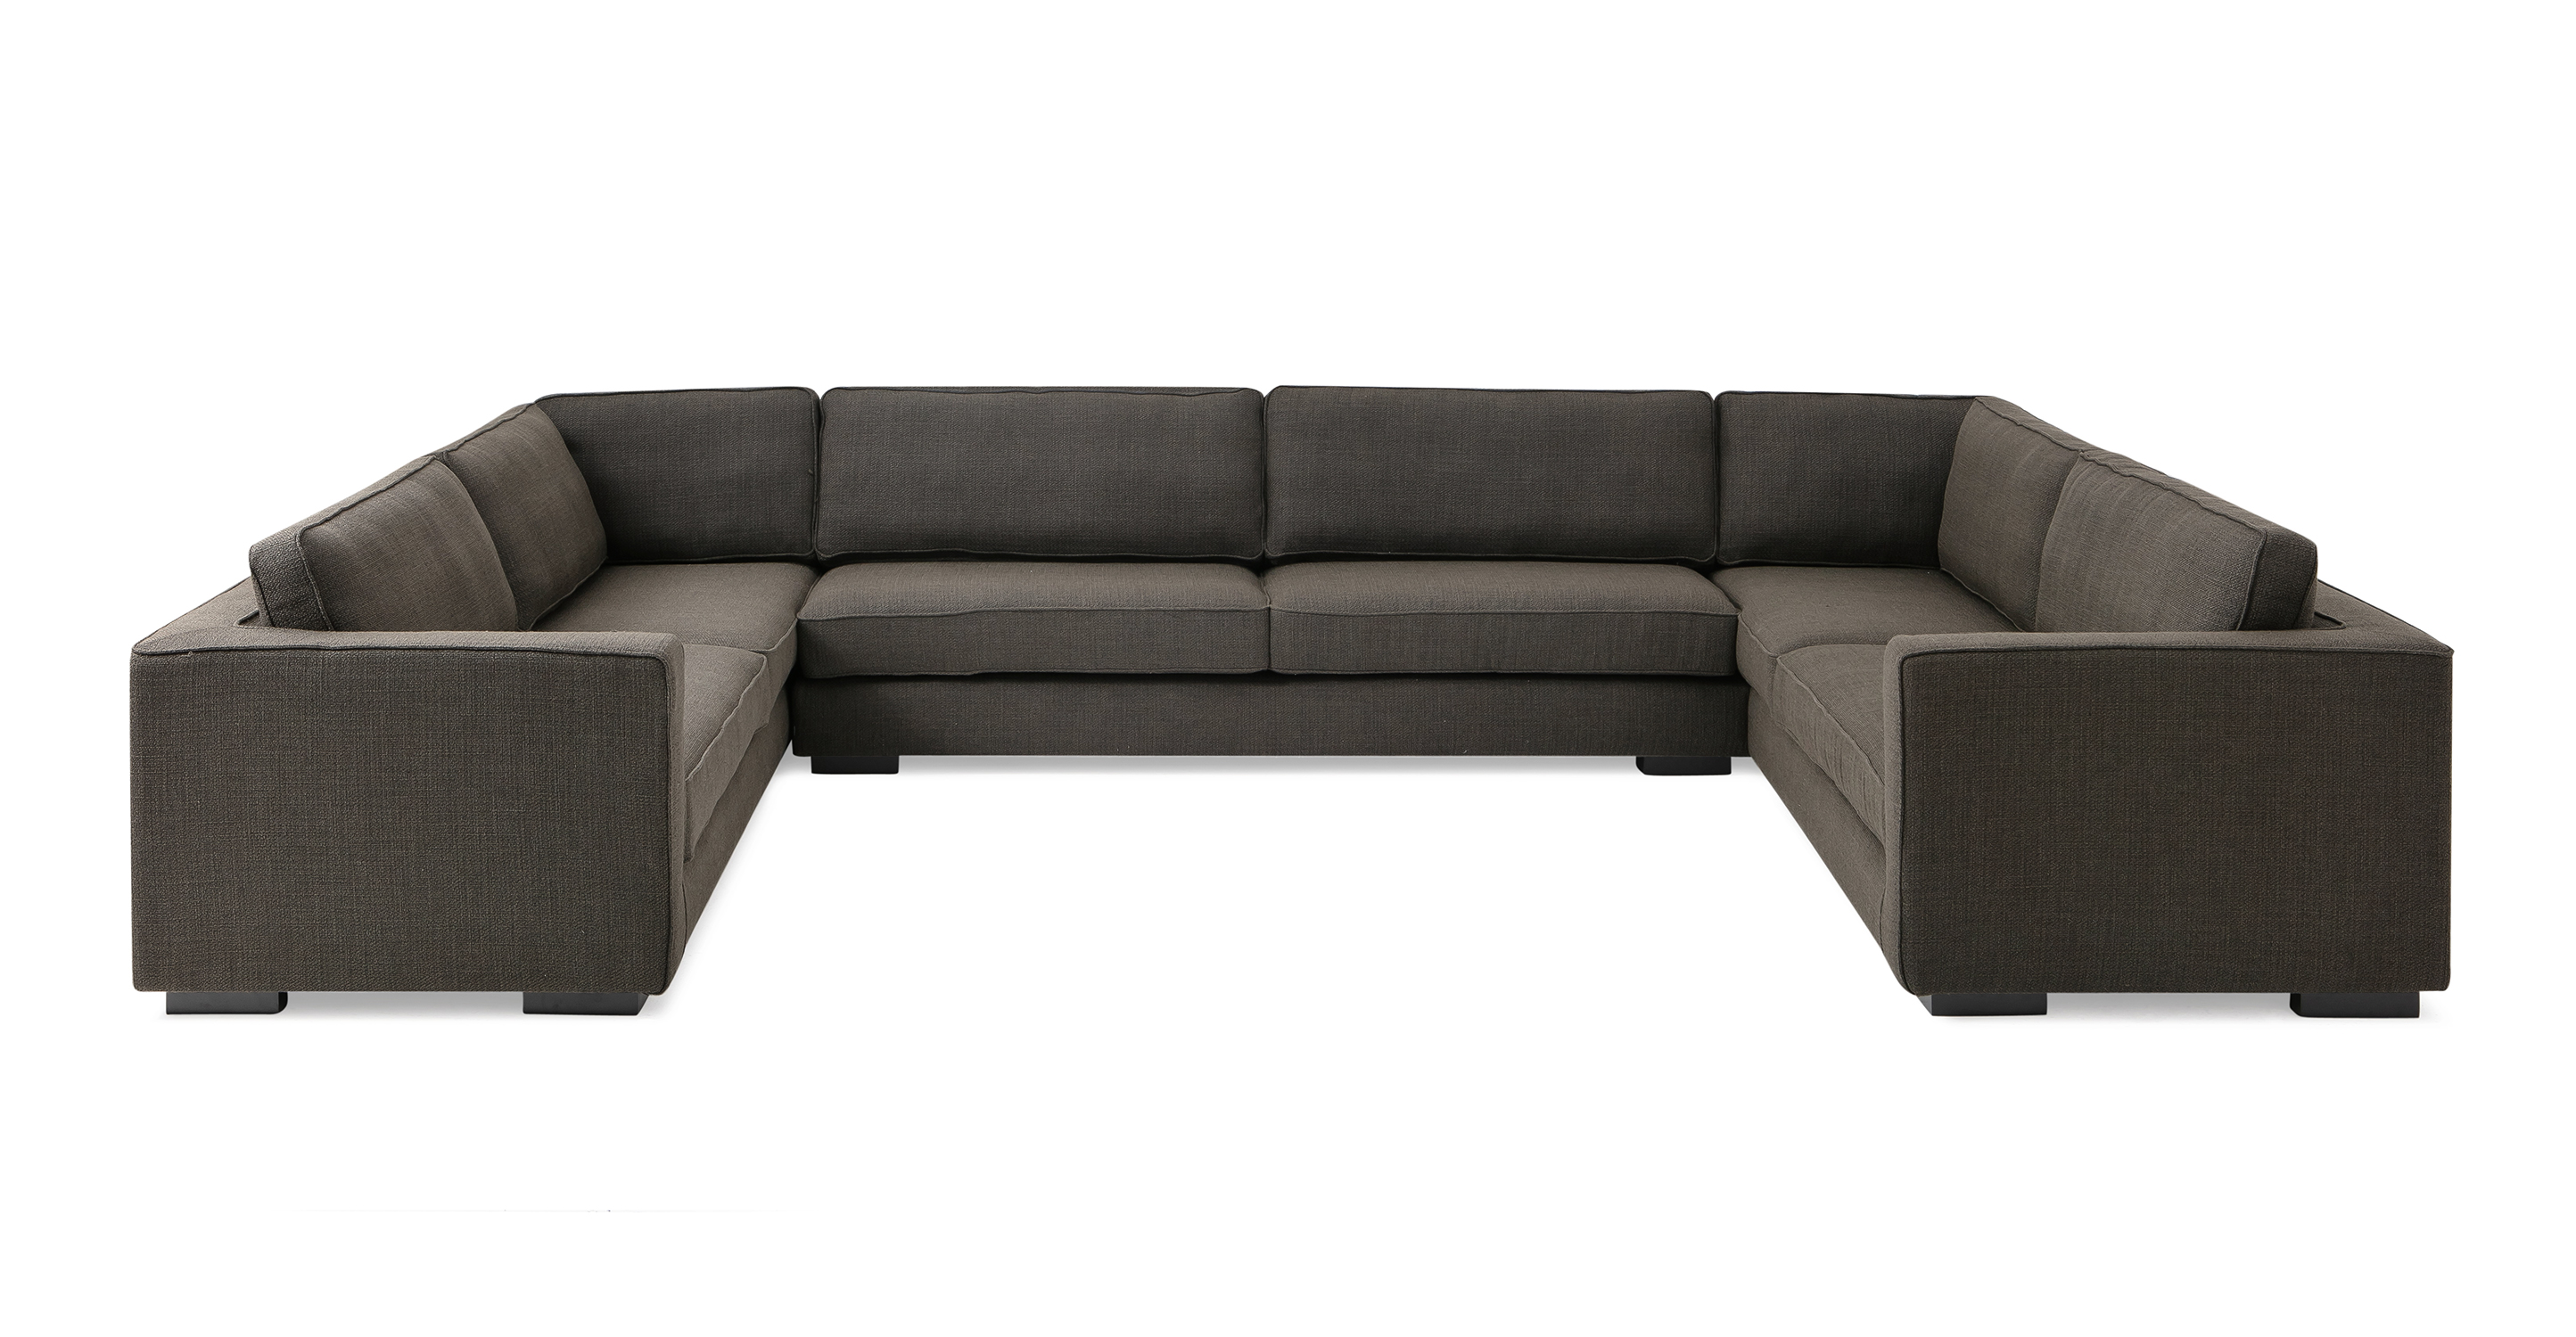 "Architect 156"" Fabric U-Sofa Sectional, Nuit Boucle"